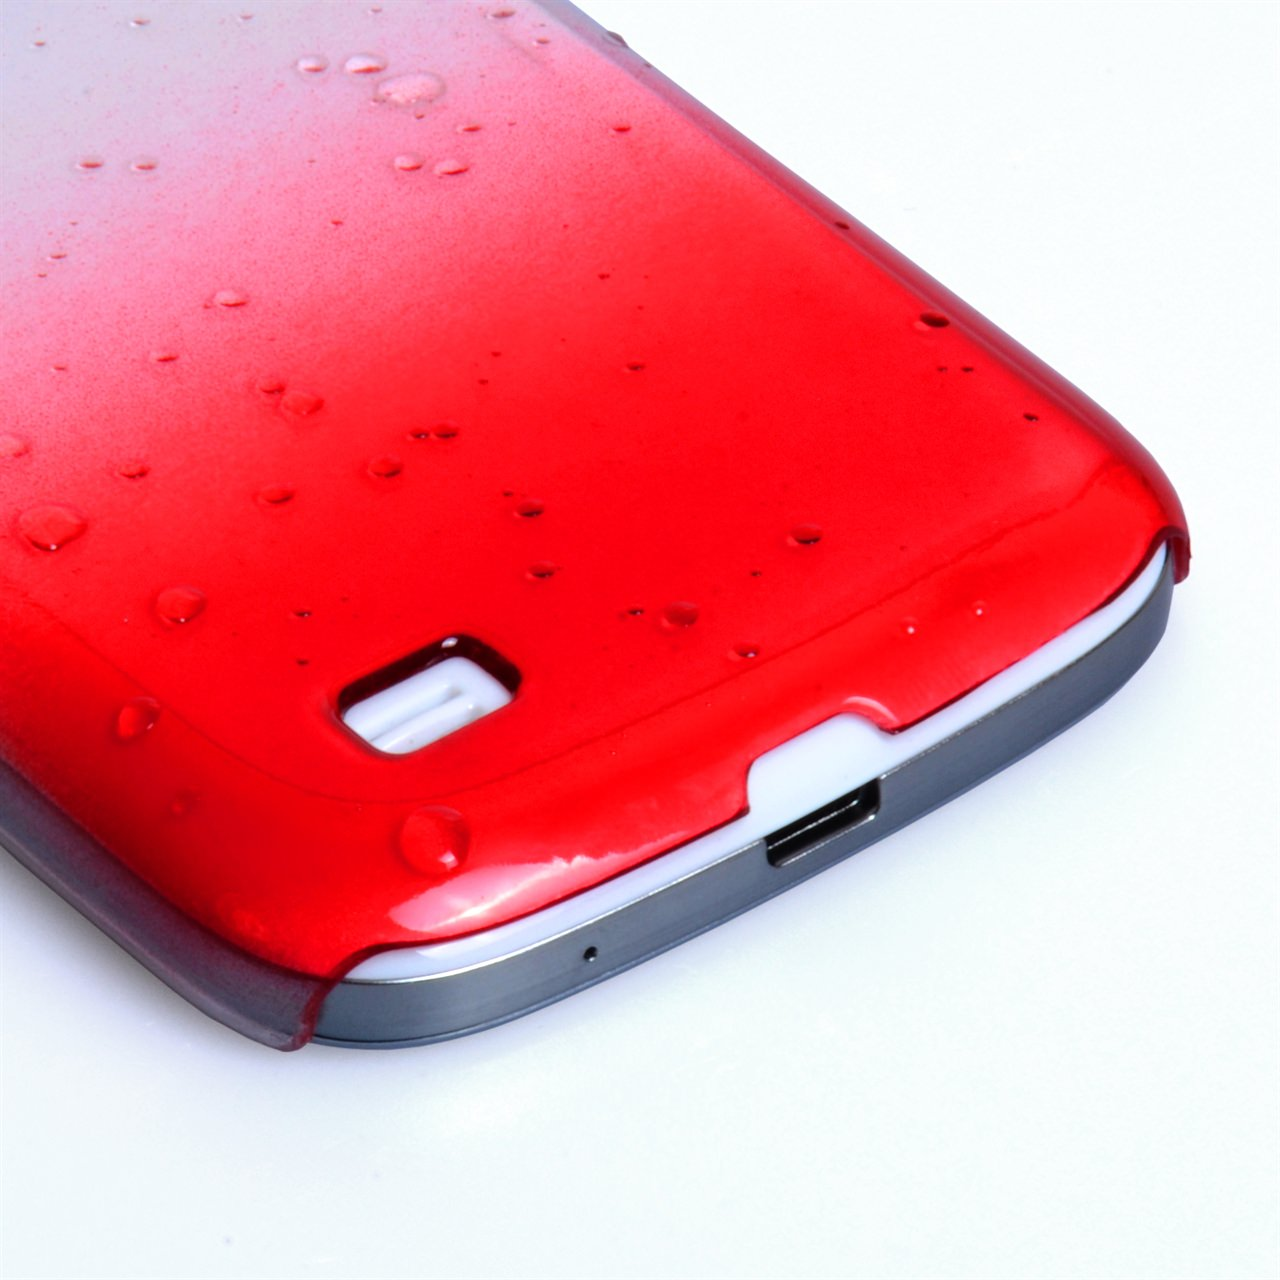 YouSave Accessories Samsung Galaxy S4 Mini Red Raindrop Hard Case